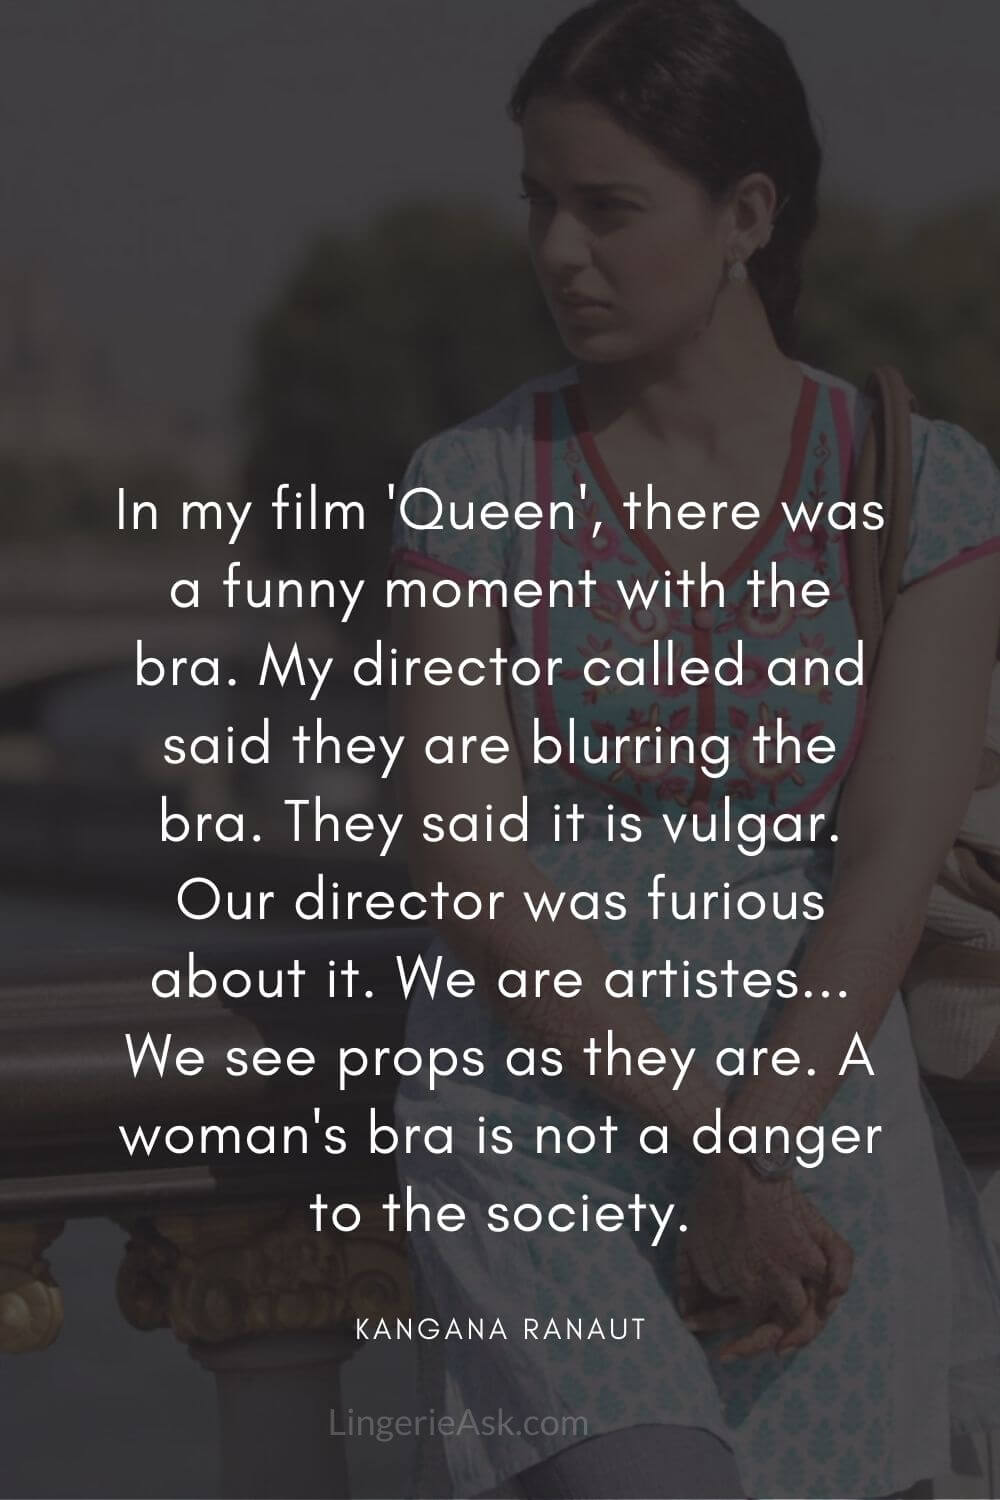 In my film 'Queen', there was a funny moment with the bra. My director called and said they are blurring the bra.